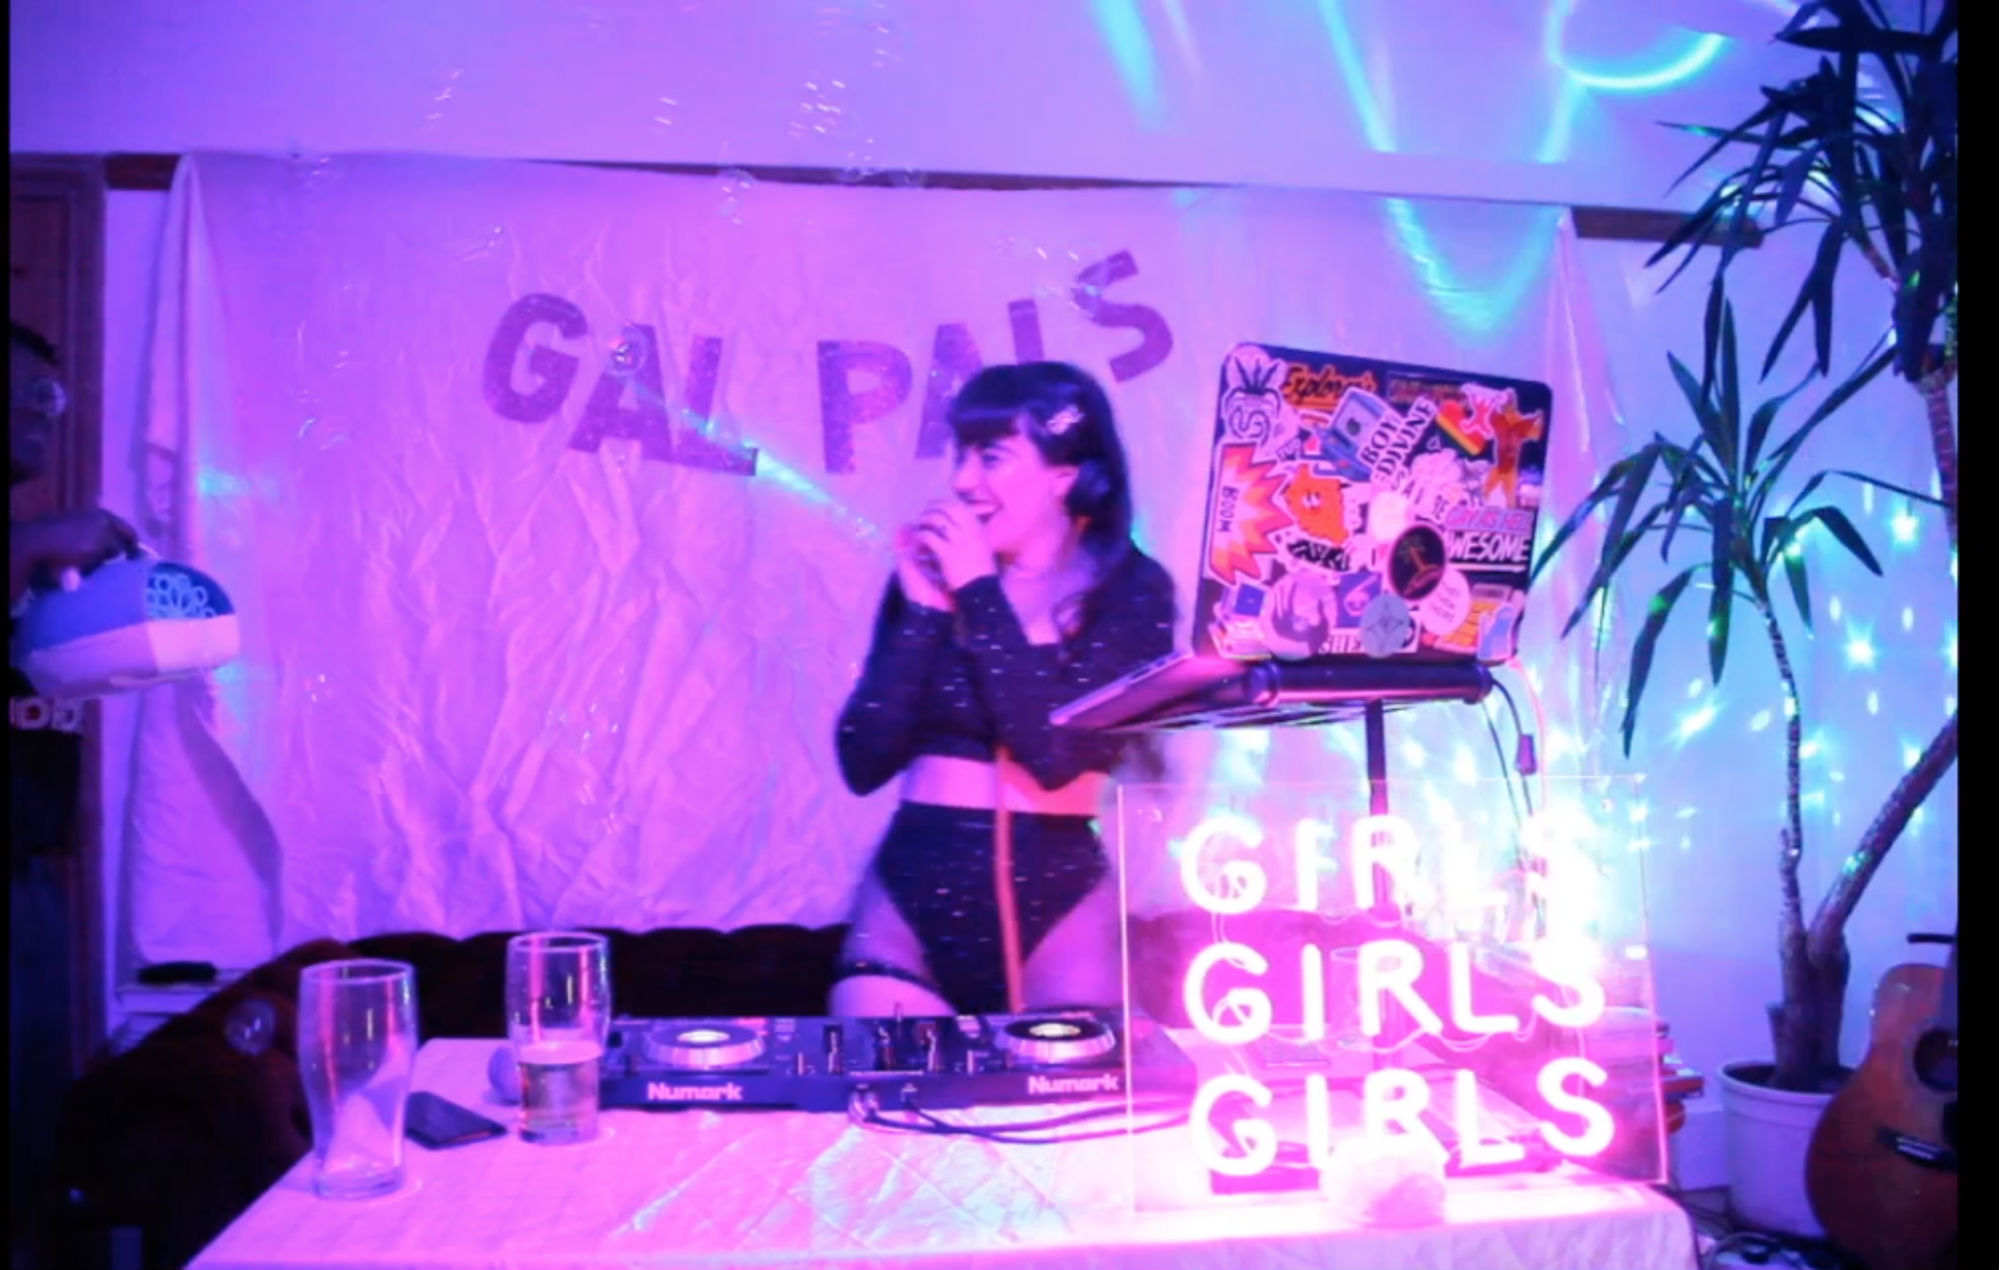 Gal Pals have also been hosting virtual dance parties